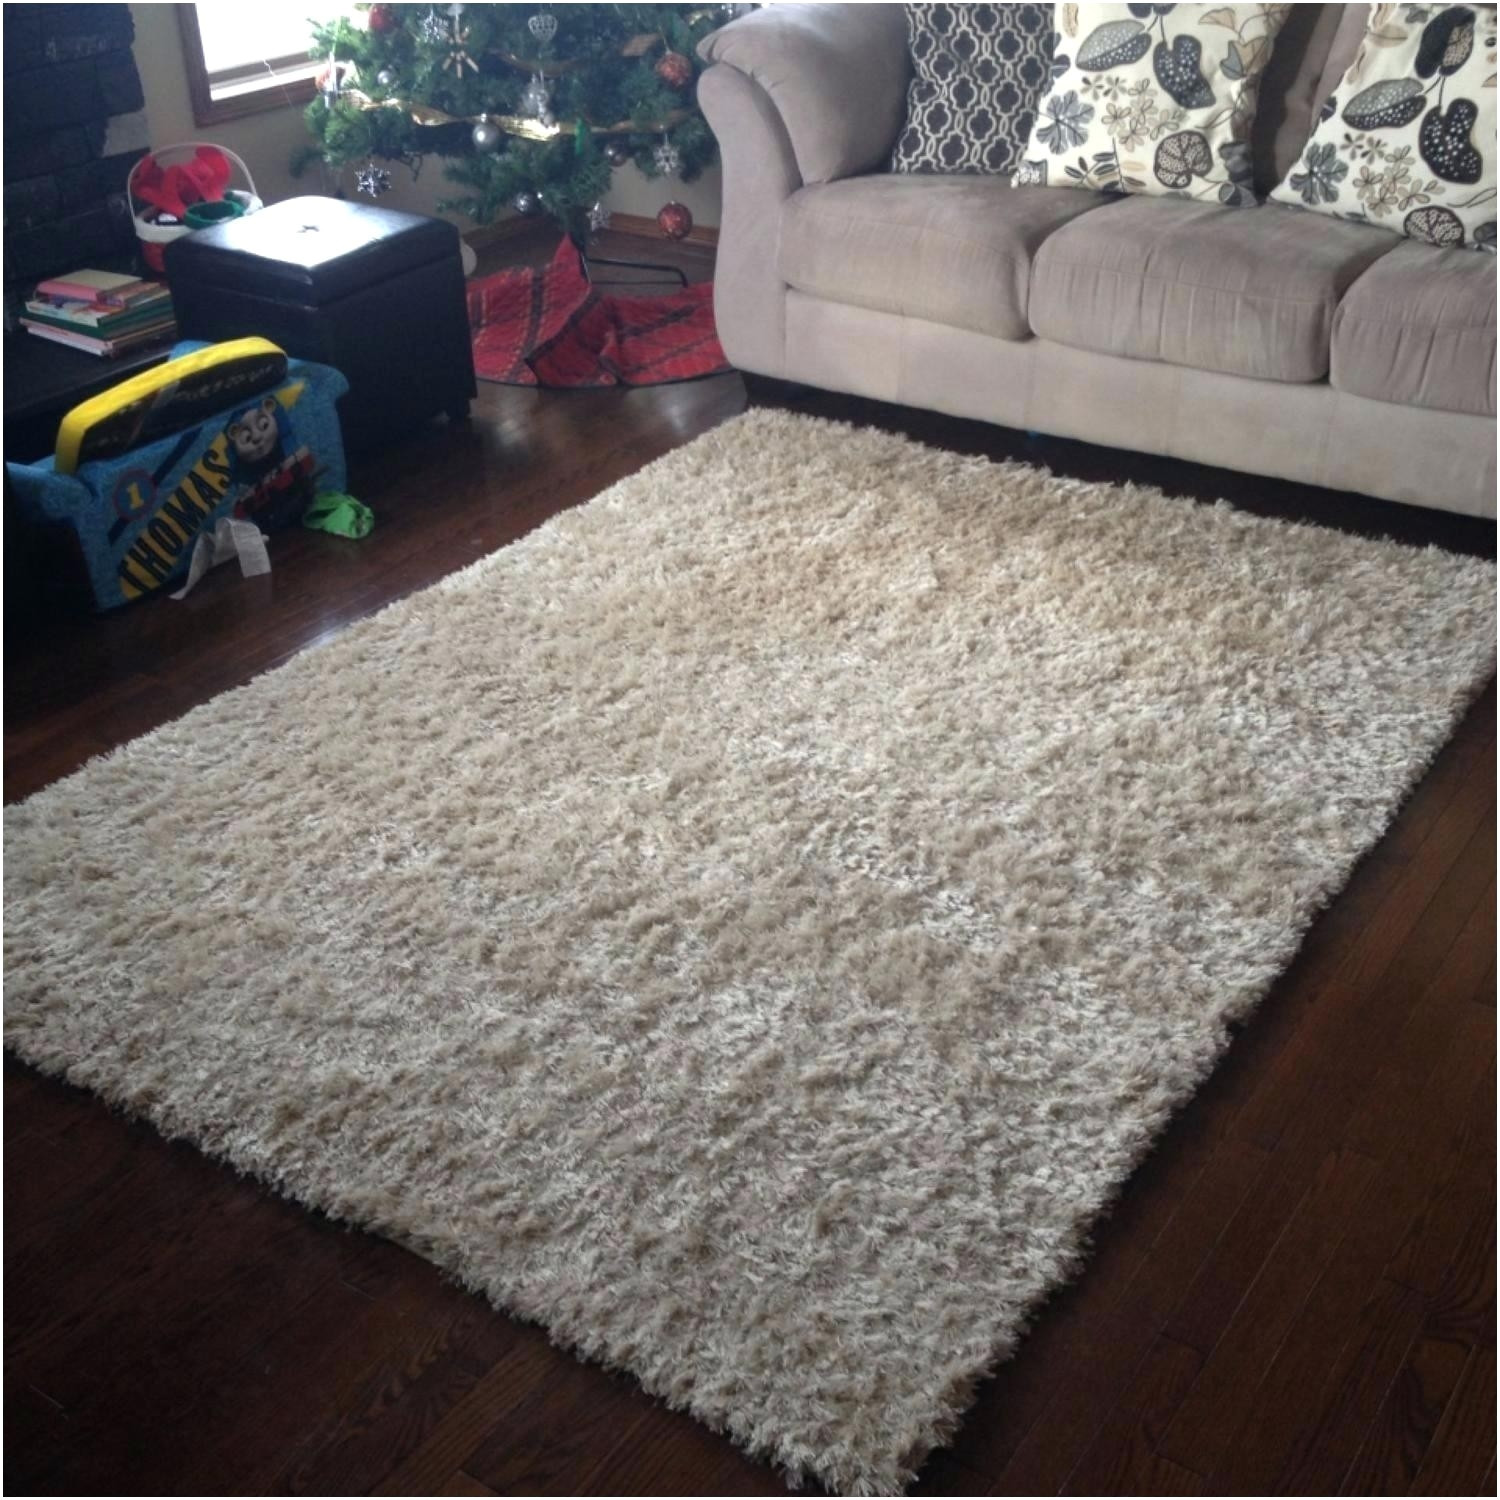 does costco sell hardwood flooring of costco rugs www topsimages com with costco area rugs home design safavieh shag rug best of this is not a round rugs